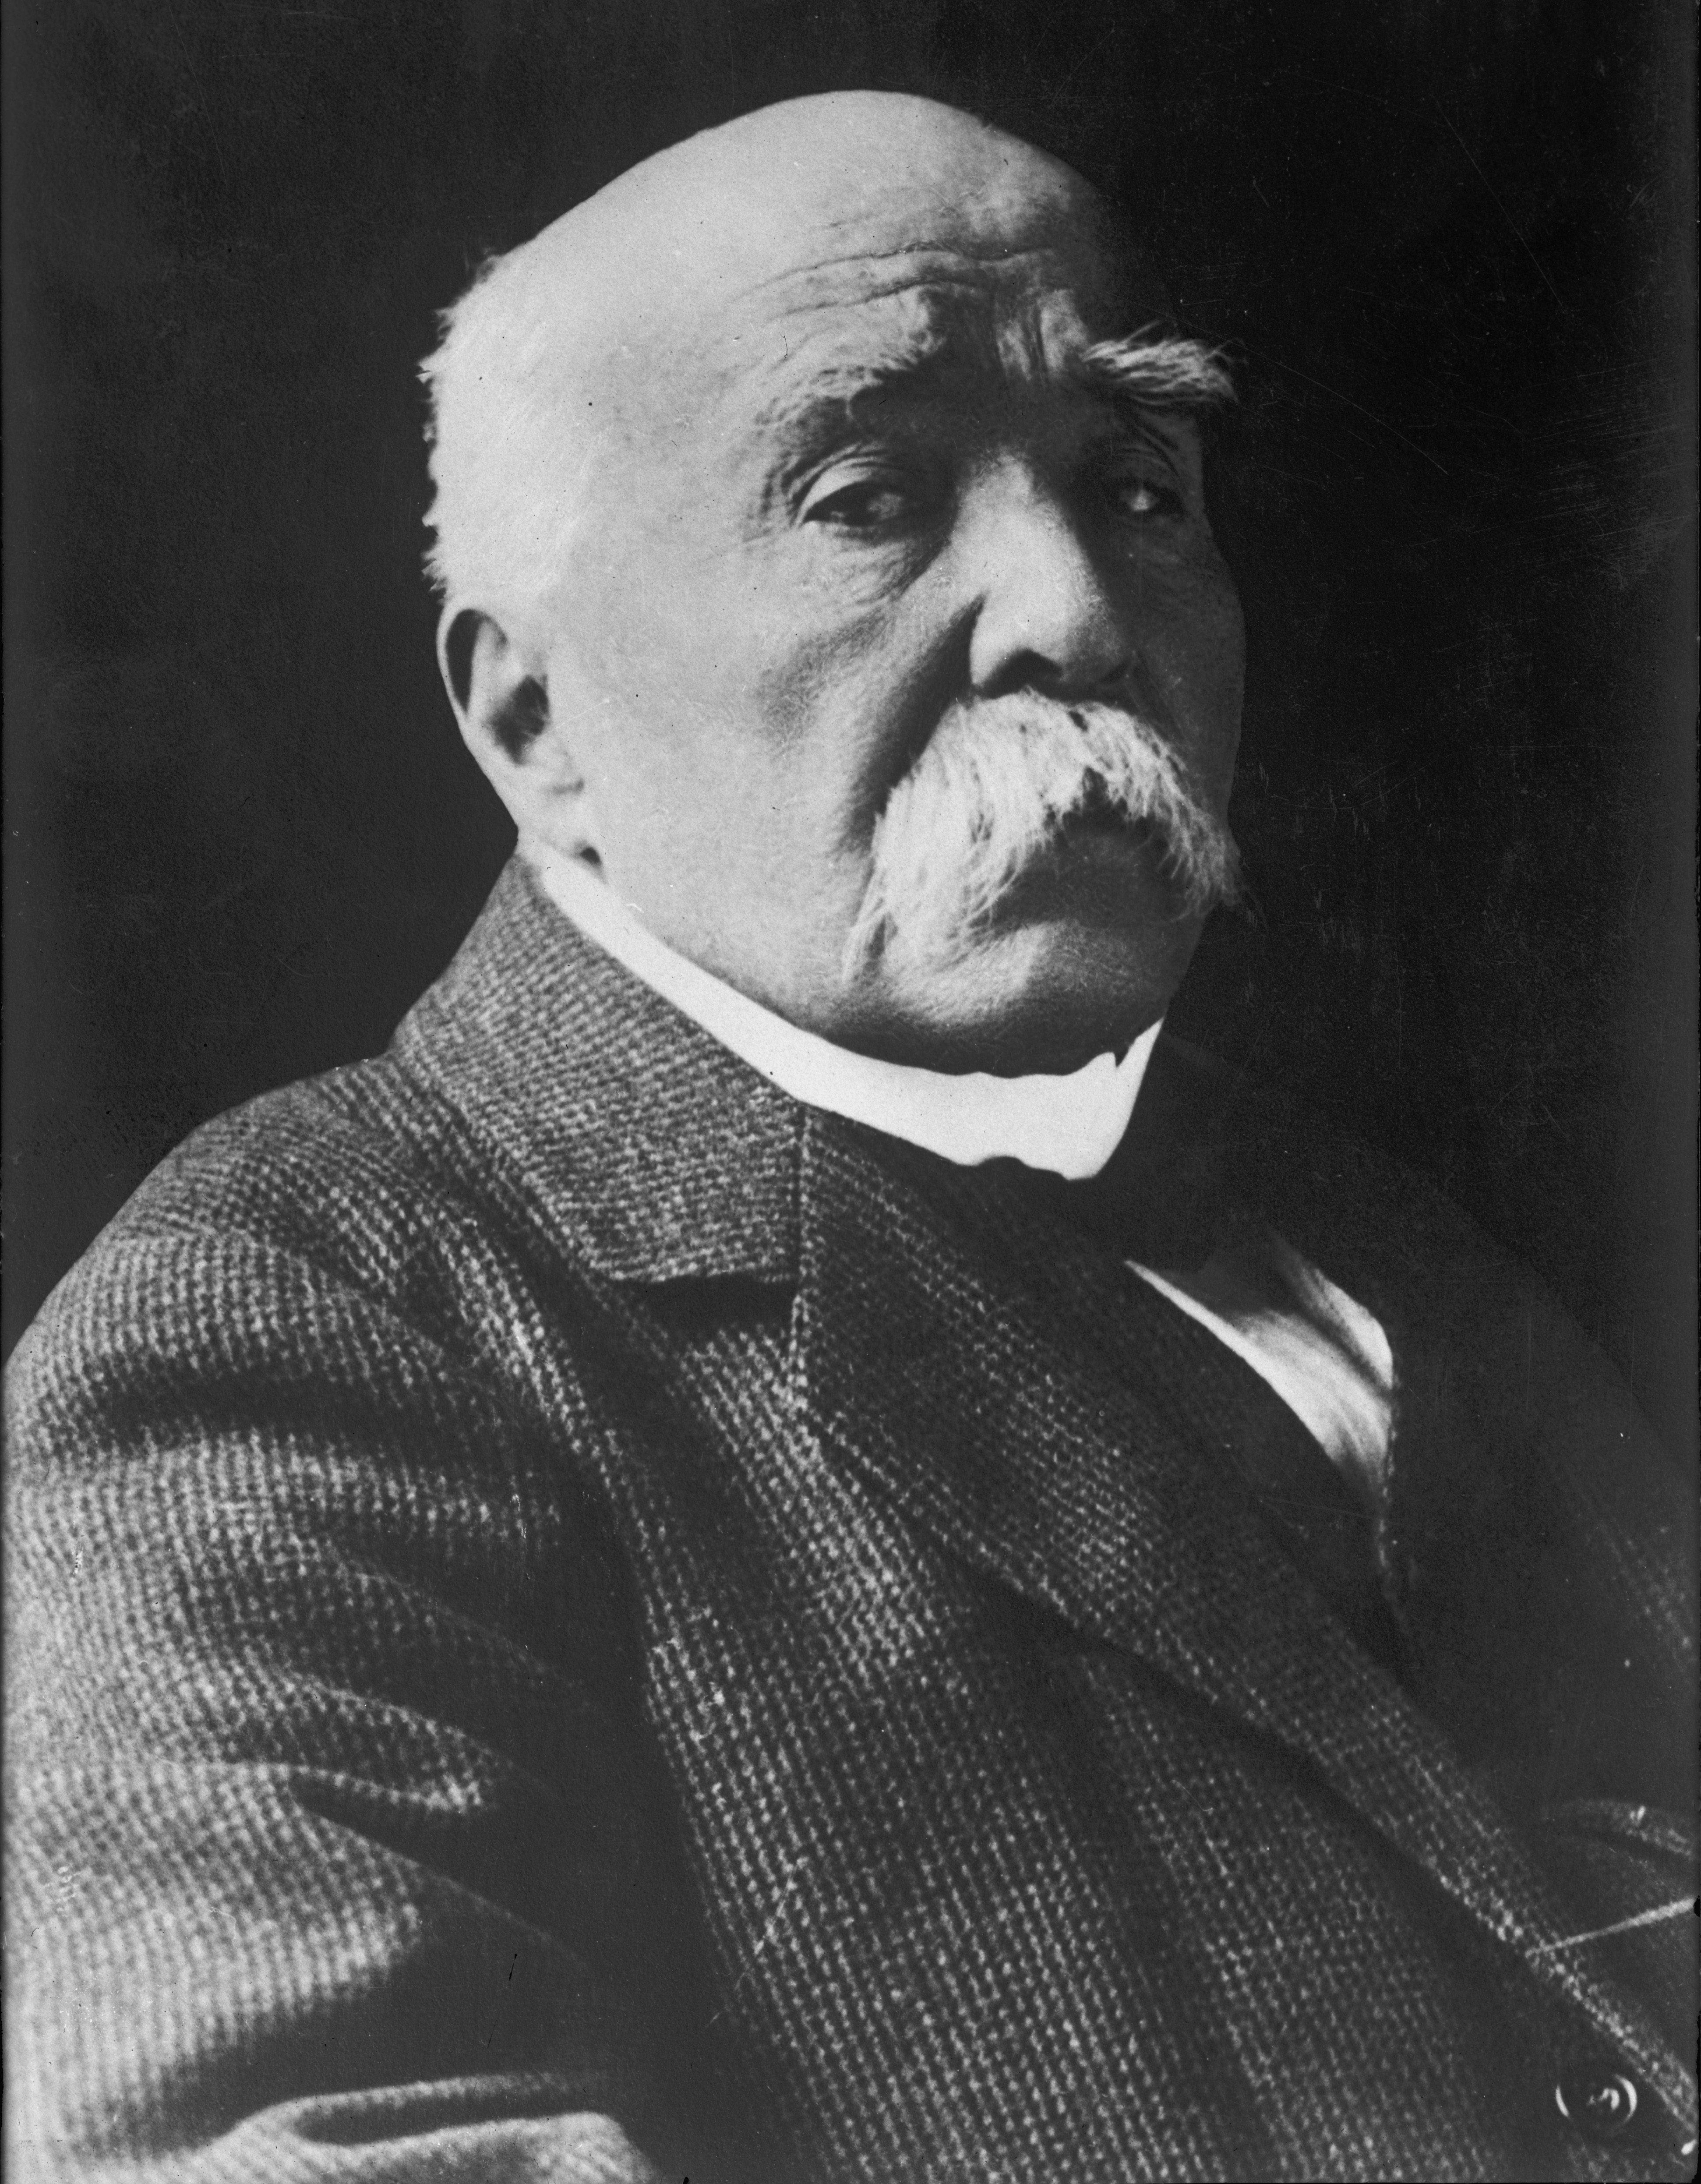 Depiction of Georges Clemenceau